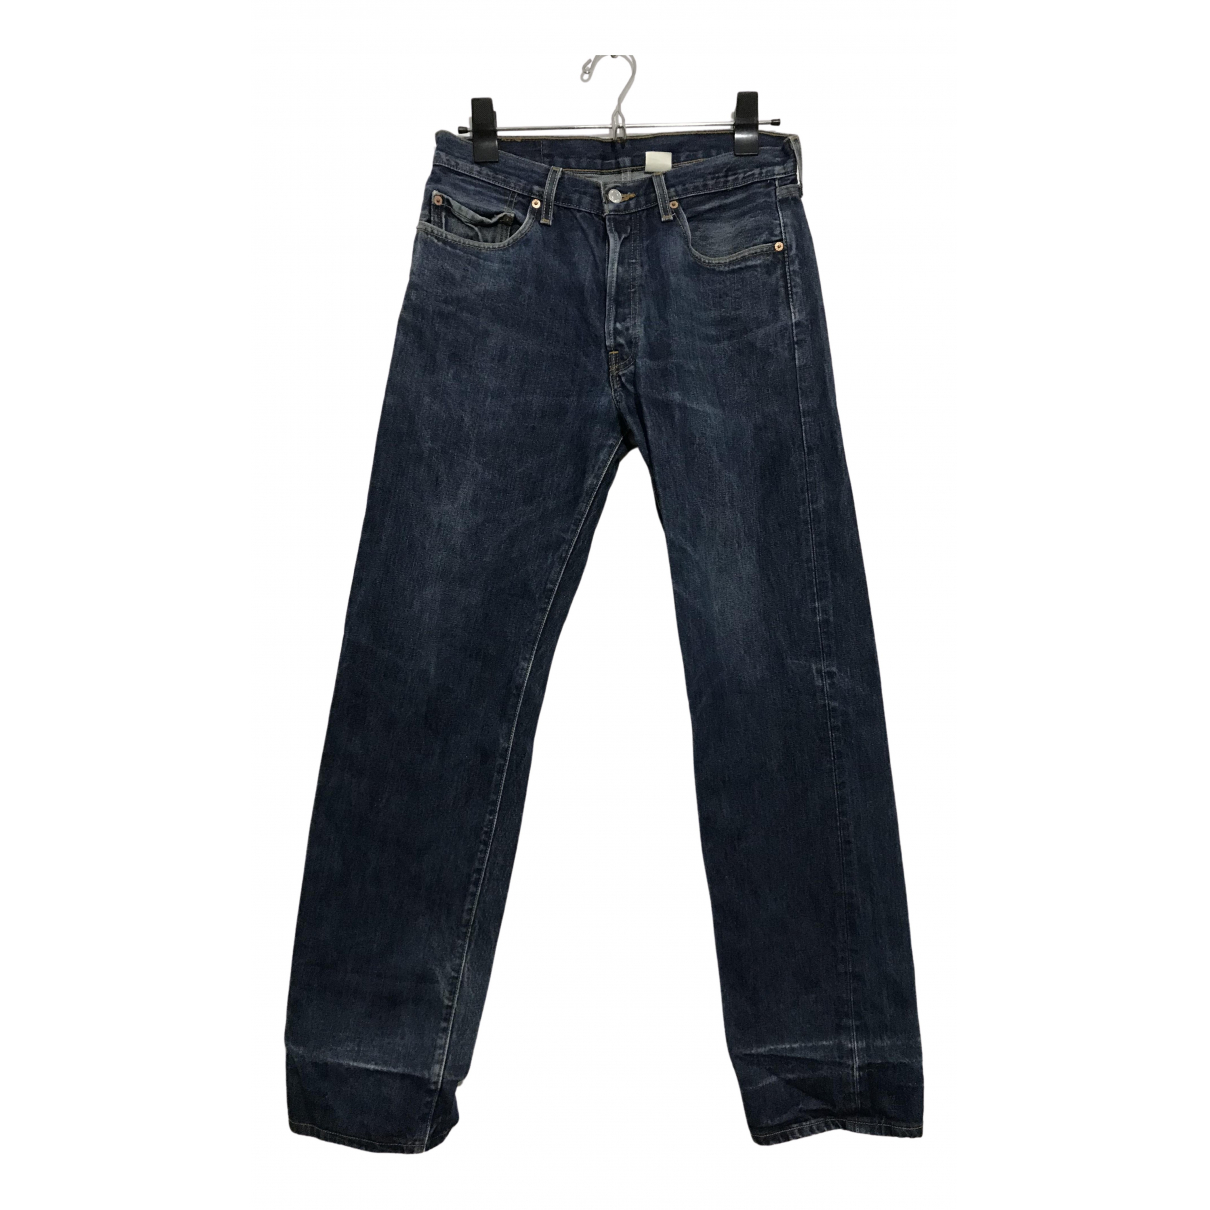 Levi's N Blue Denim - Jeans Trousers for Men 34 UK - US